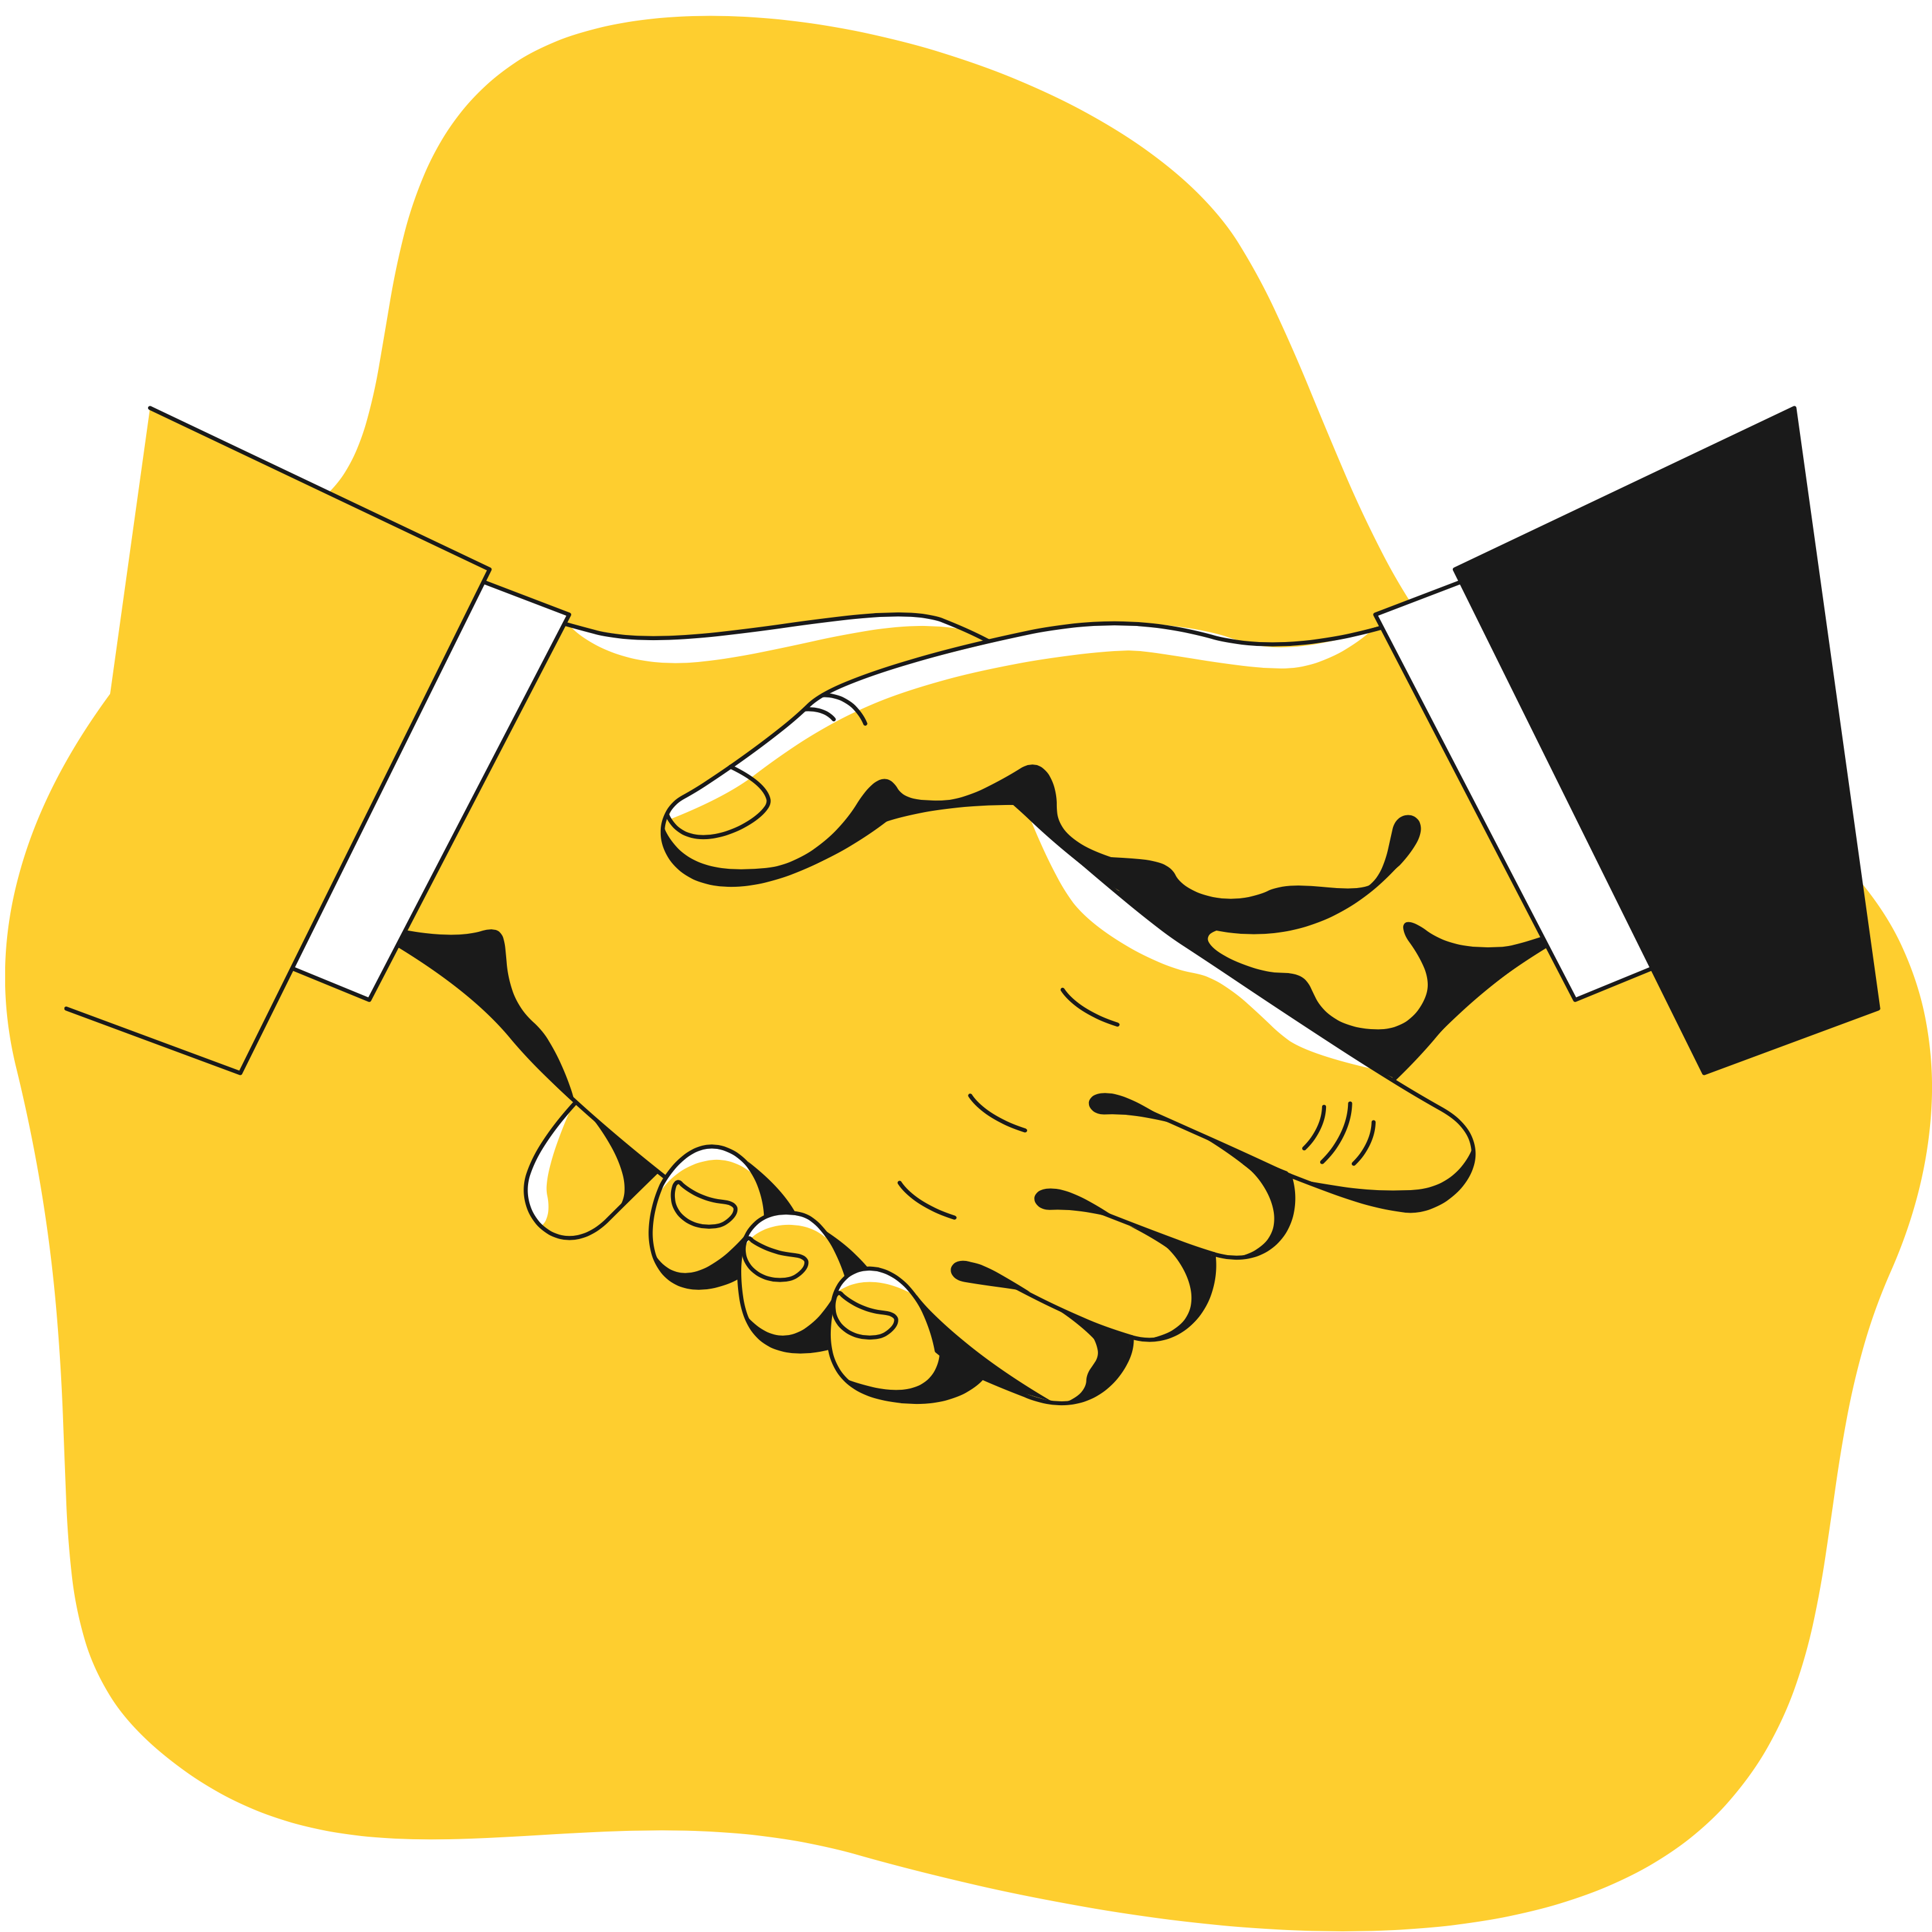 Business people shaking hands, only the clasped hands are shown.